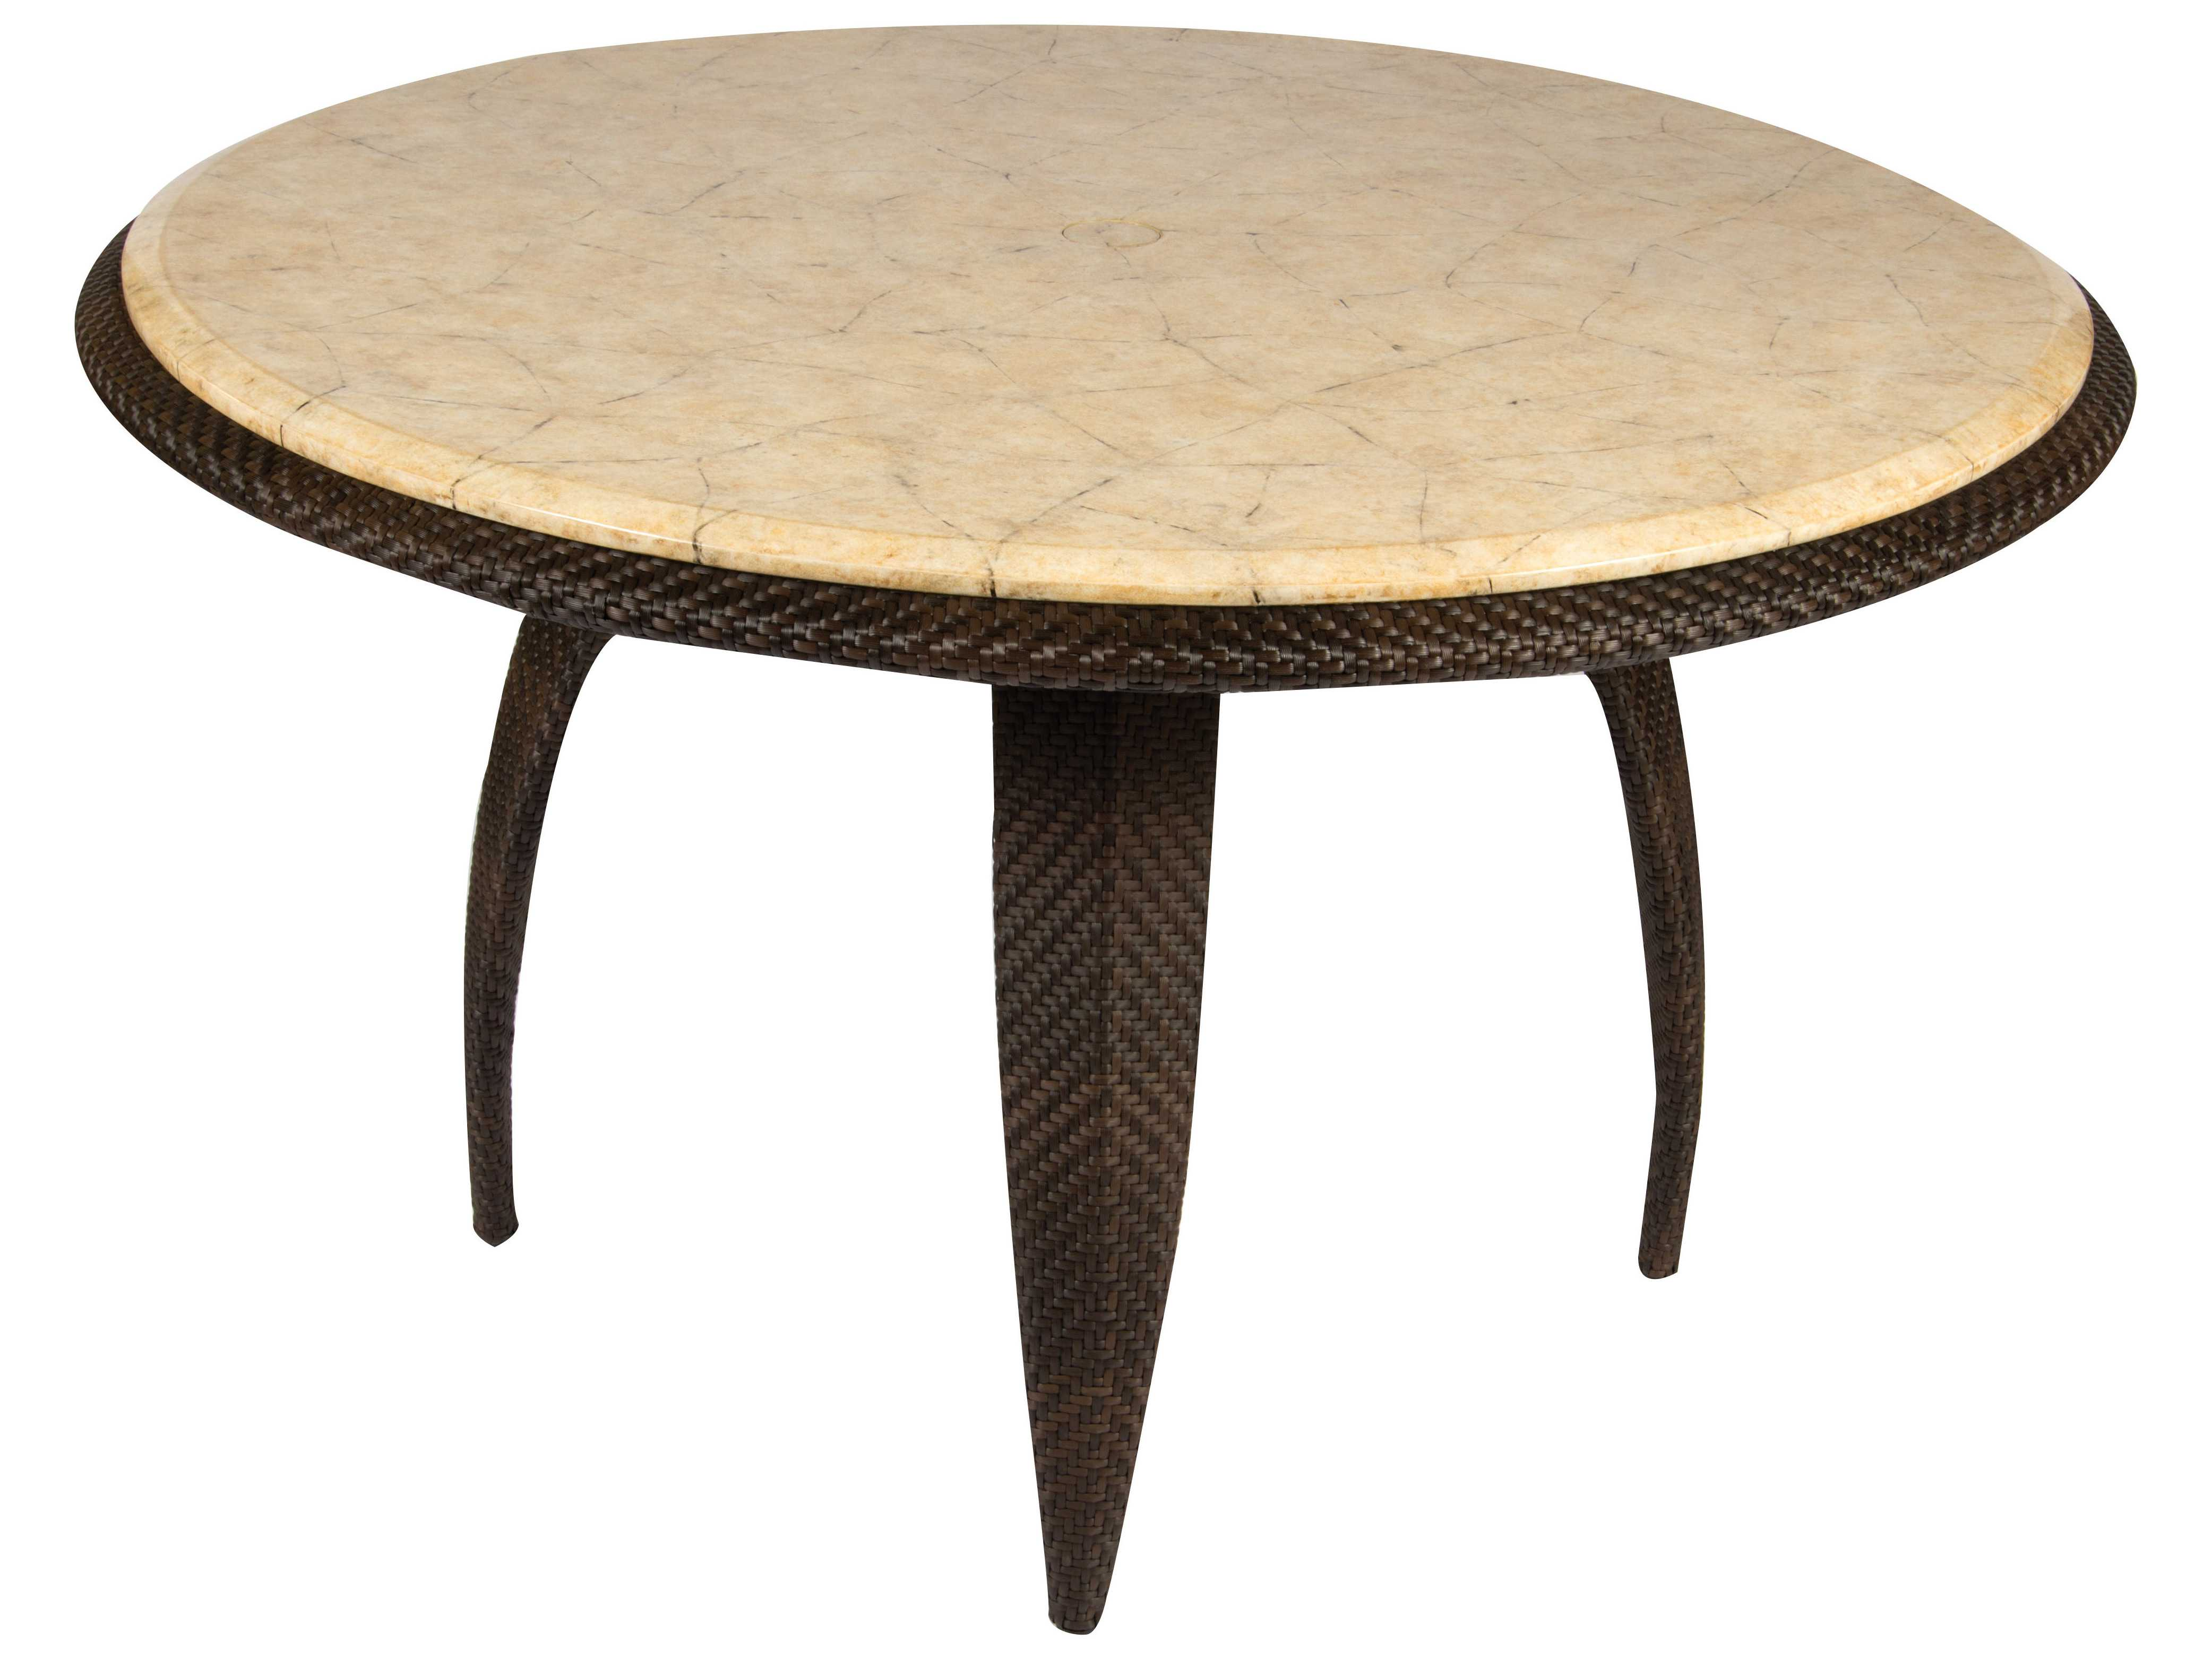 Whitecraft bali wicker 48 round stone top dining table for Stone dining table